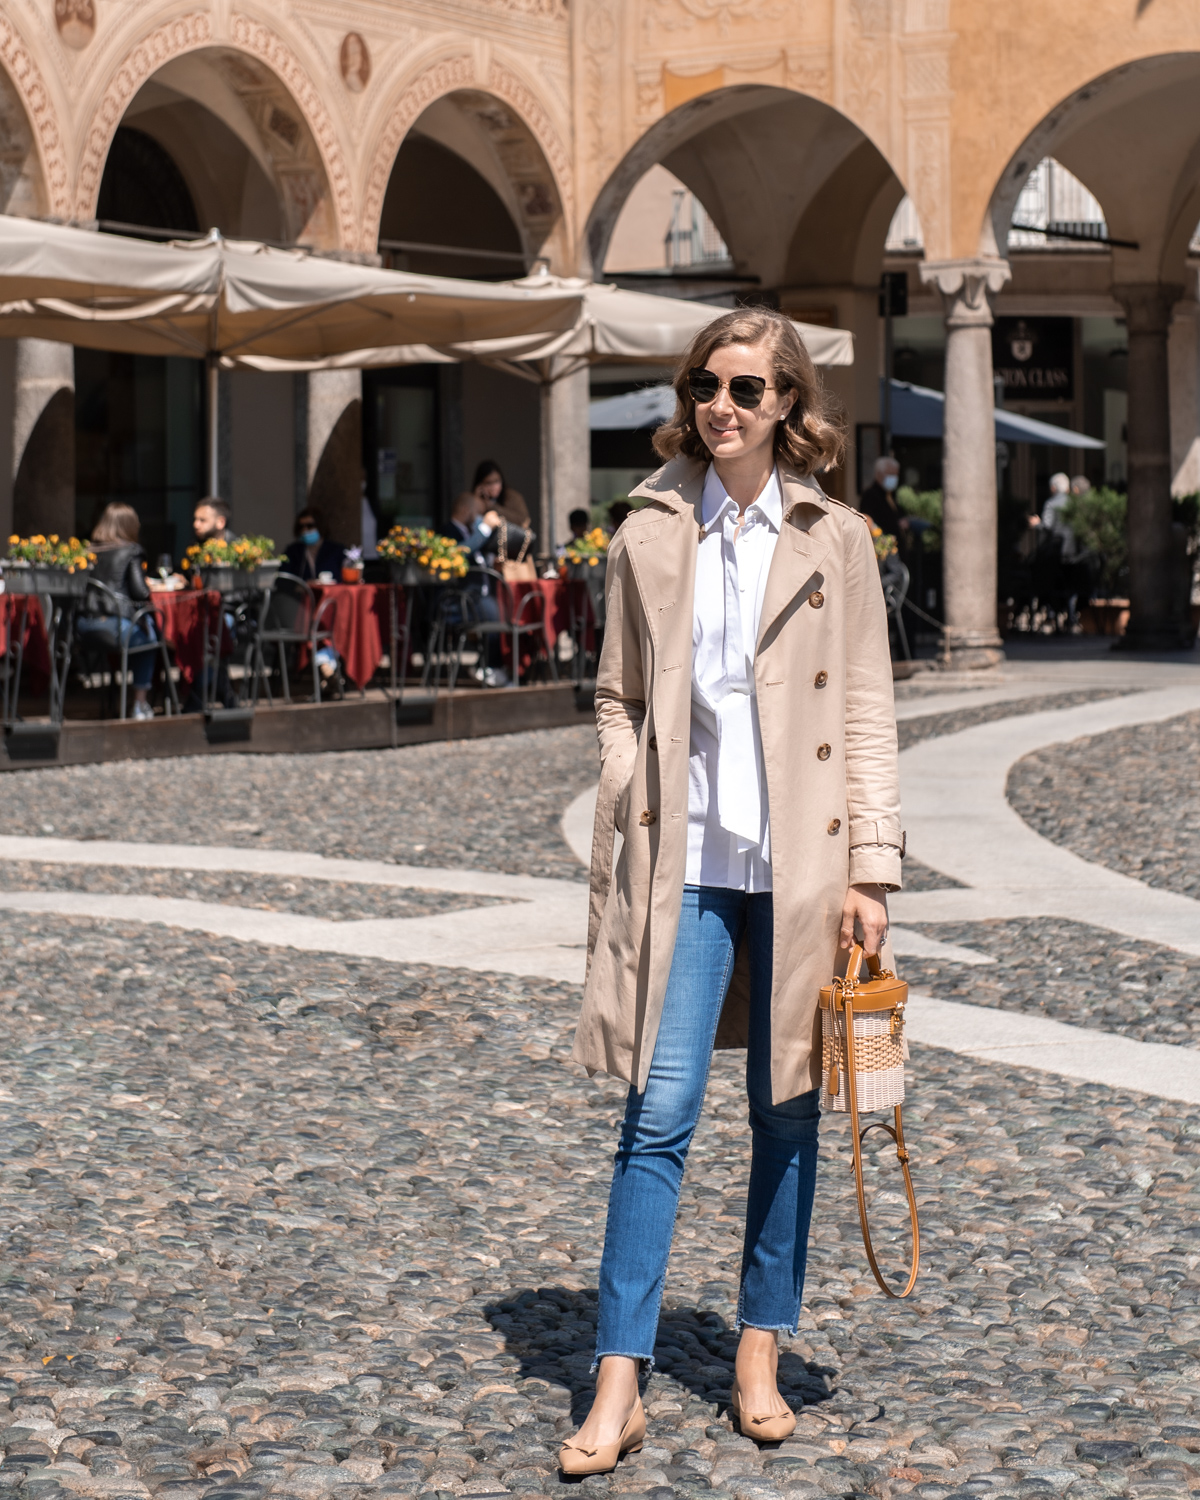 Stacie Flinner Daily Look Brooks Brothers Trench Coat